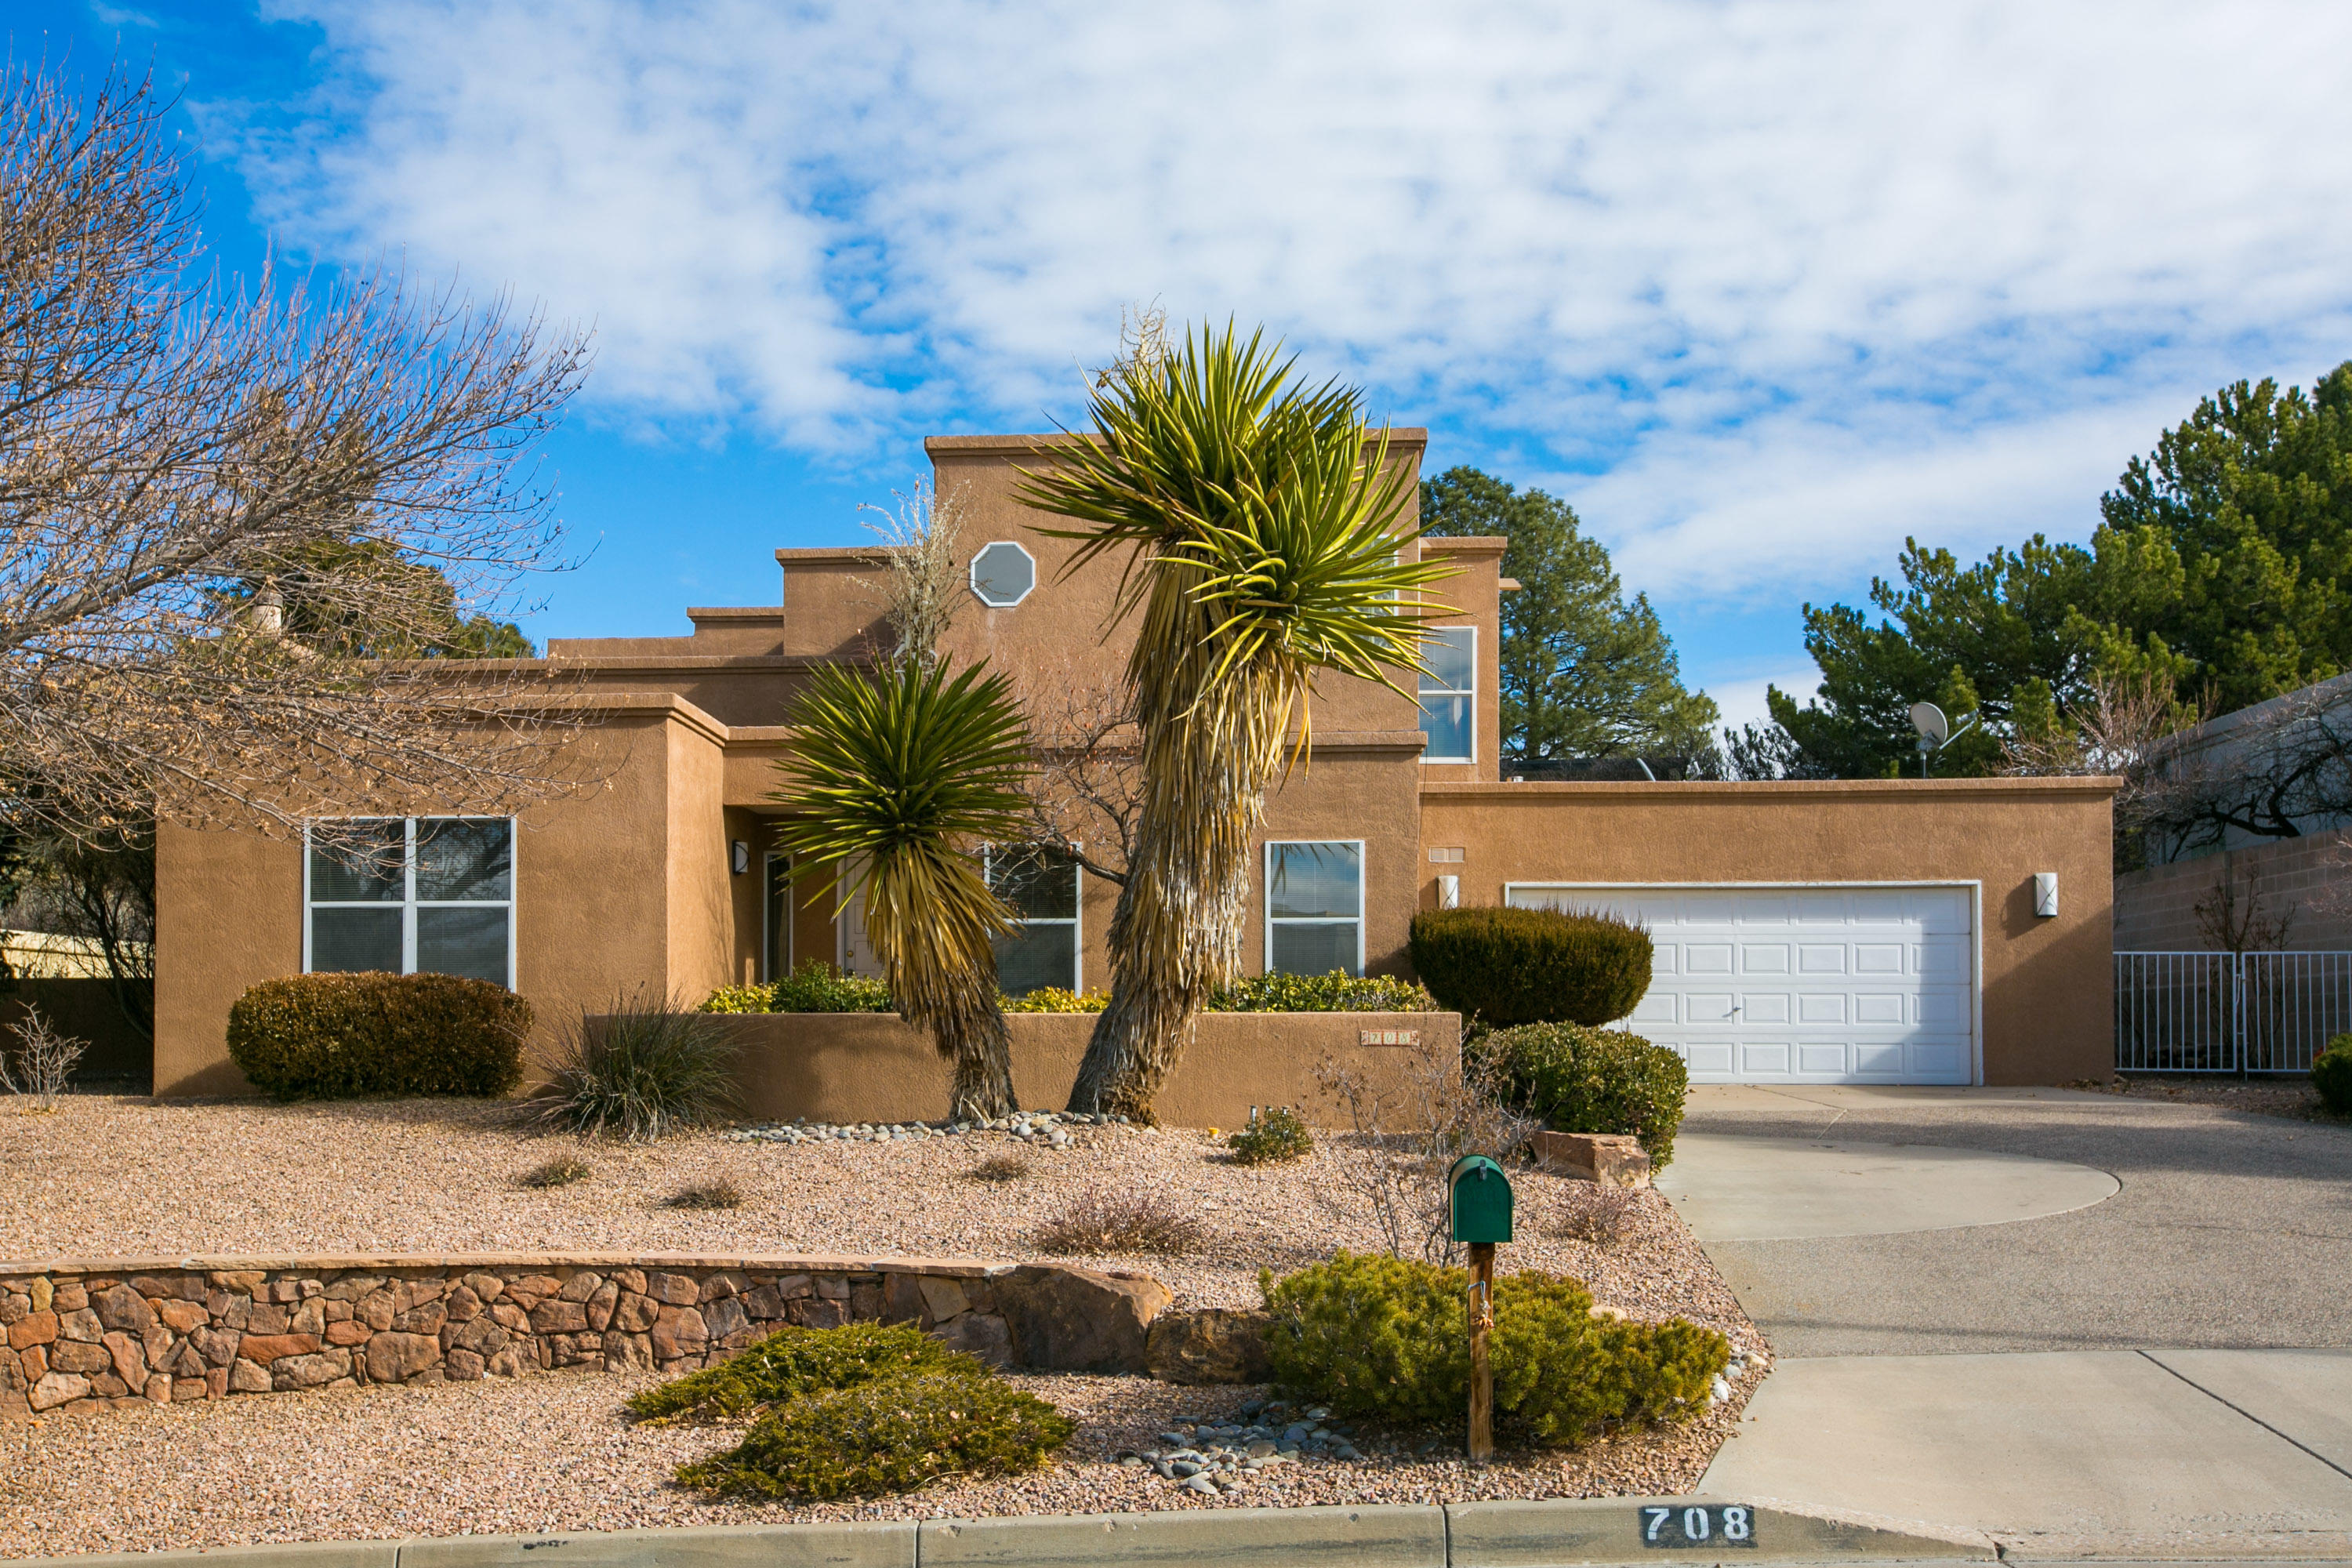 708 KIVA Drive SE Property Photo - Albuquerque, NM real estate listing